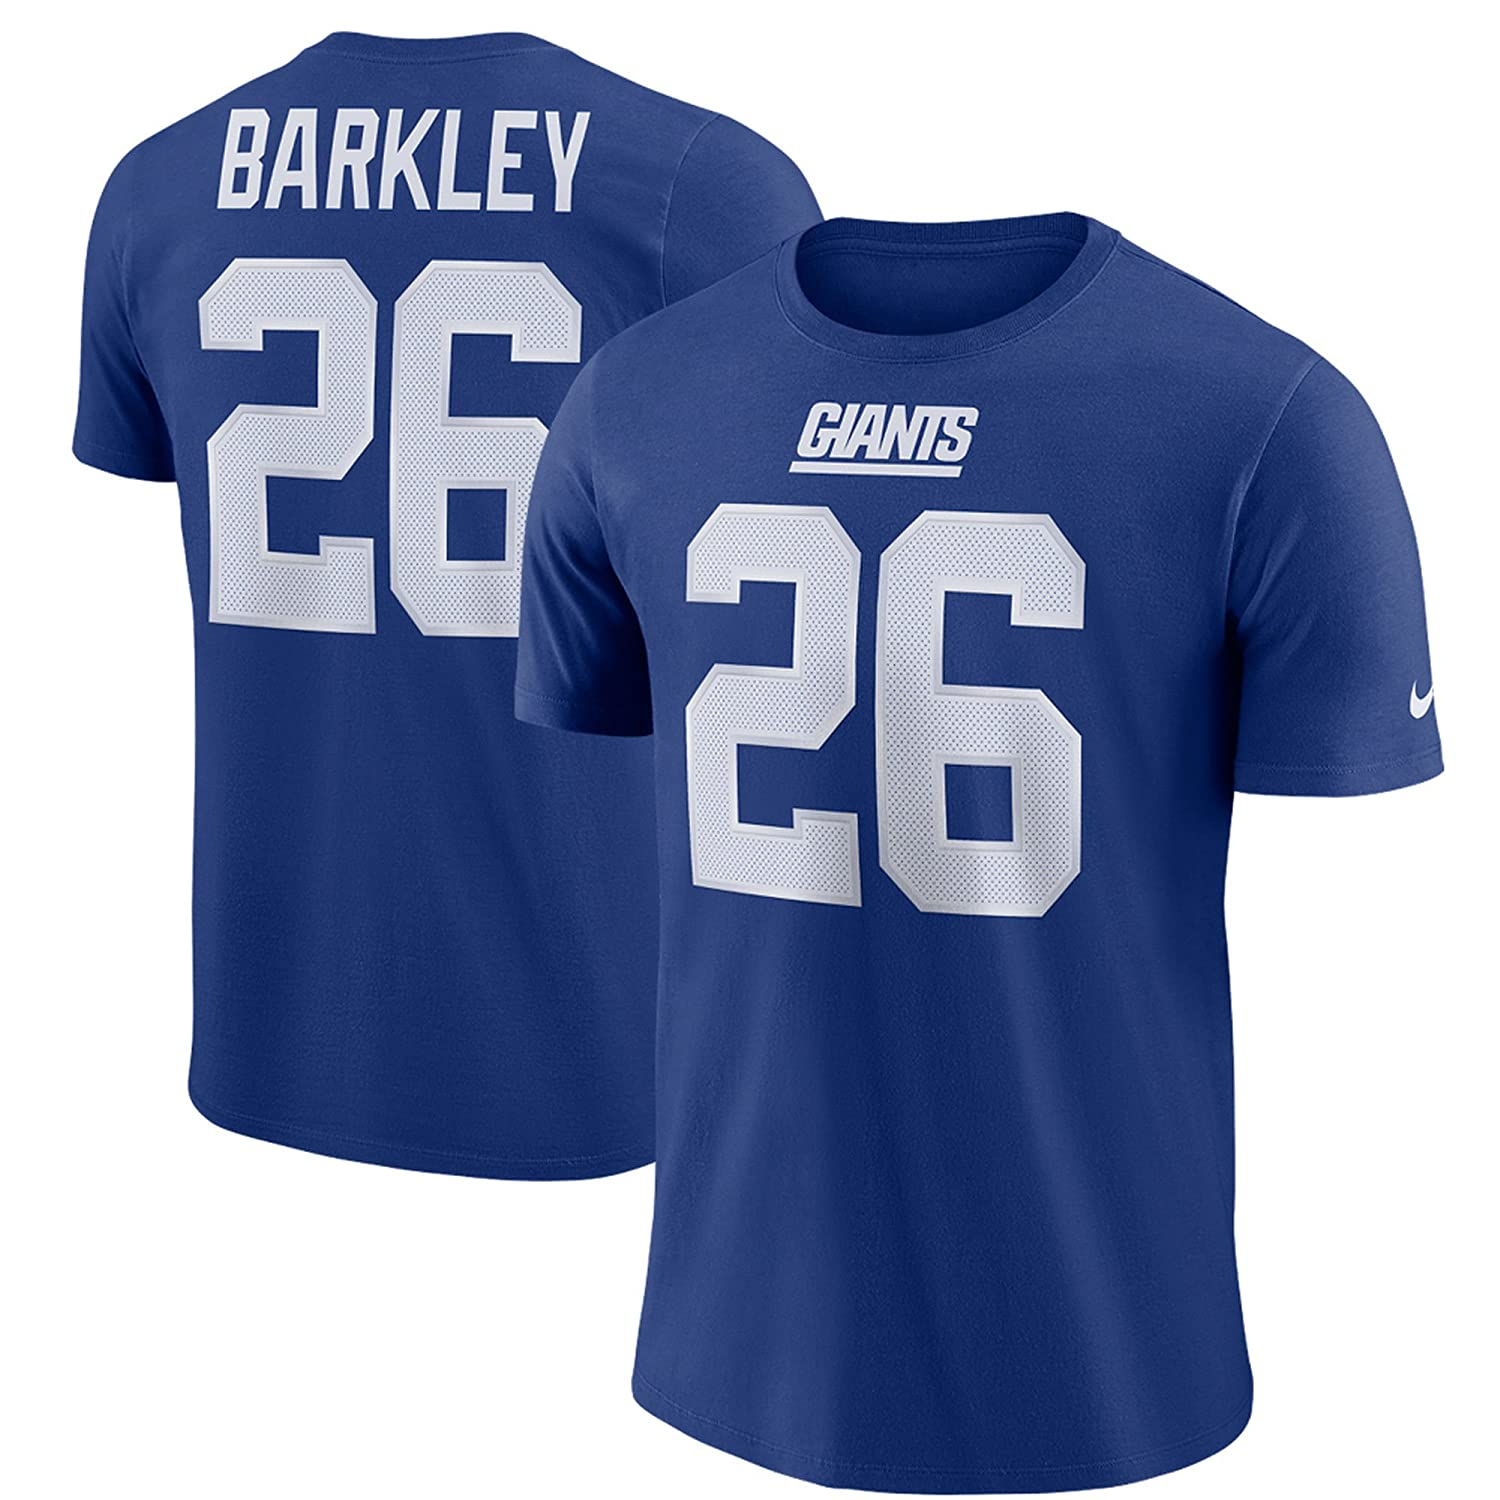 cc25eb8881bbb Amazon.com : Saquon Barkley New York Giants #26 Youth Boys Name & Number  Player T-Shirt : Sports & Outdoors